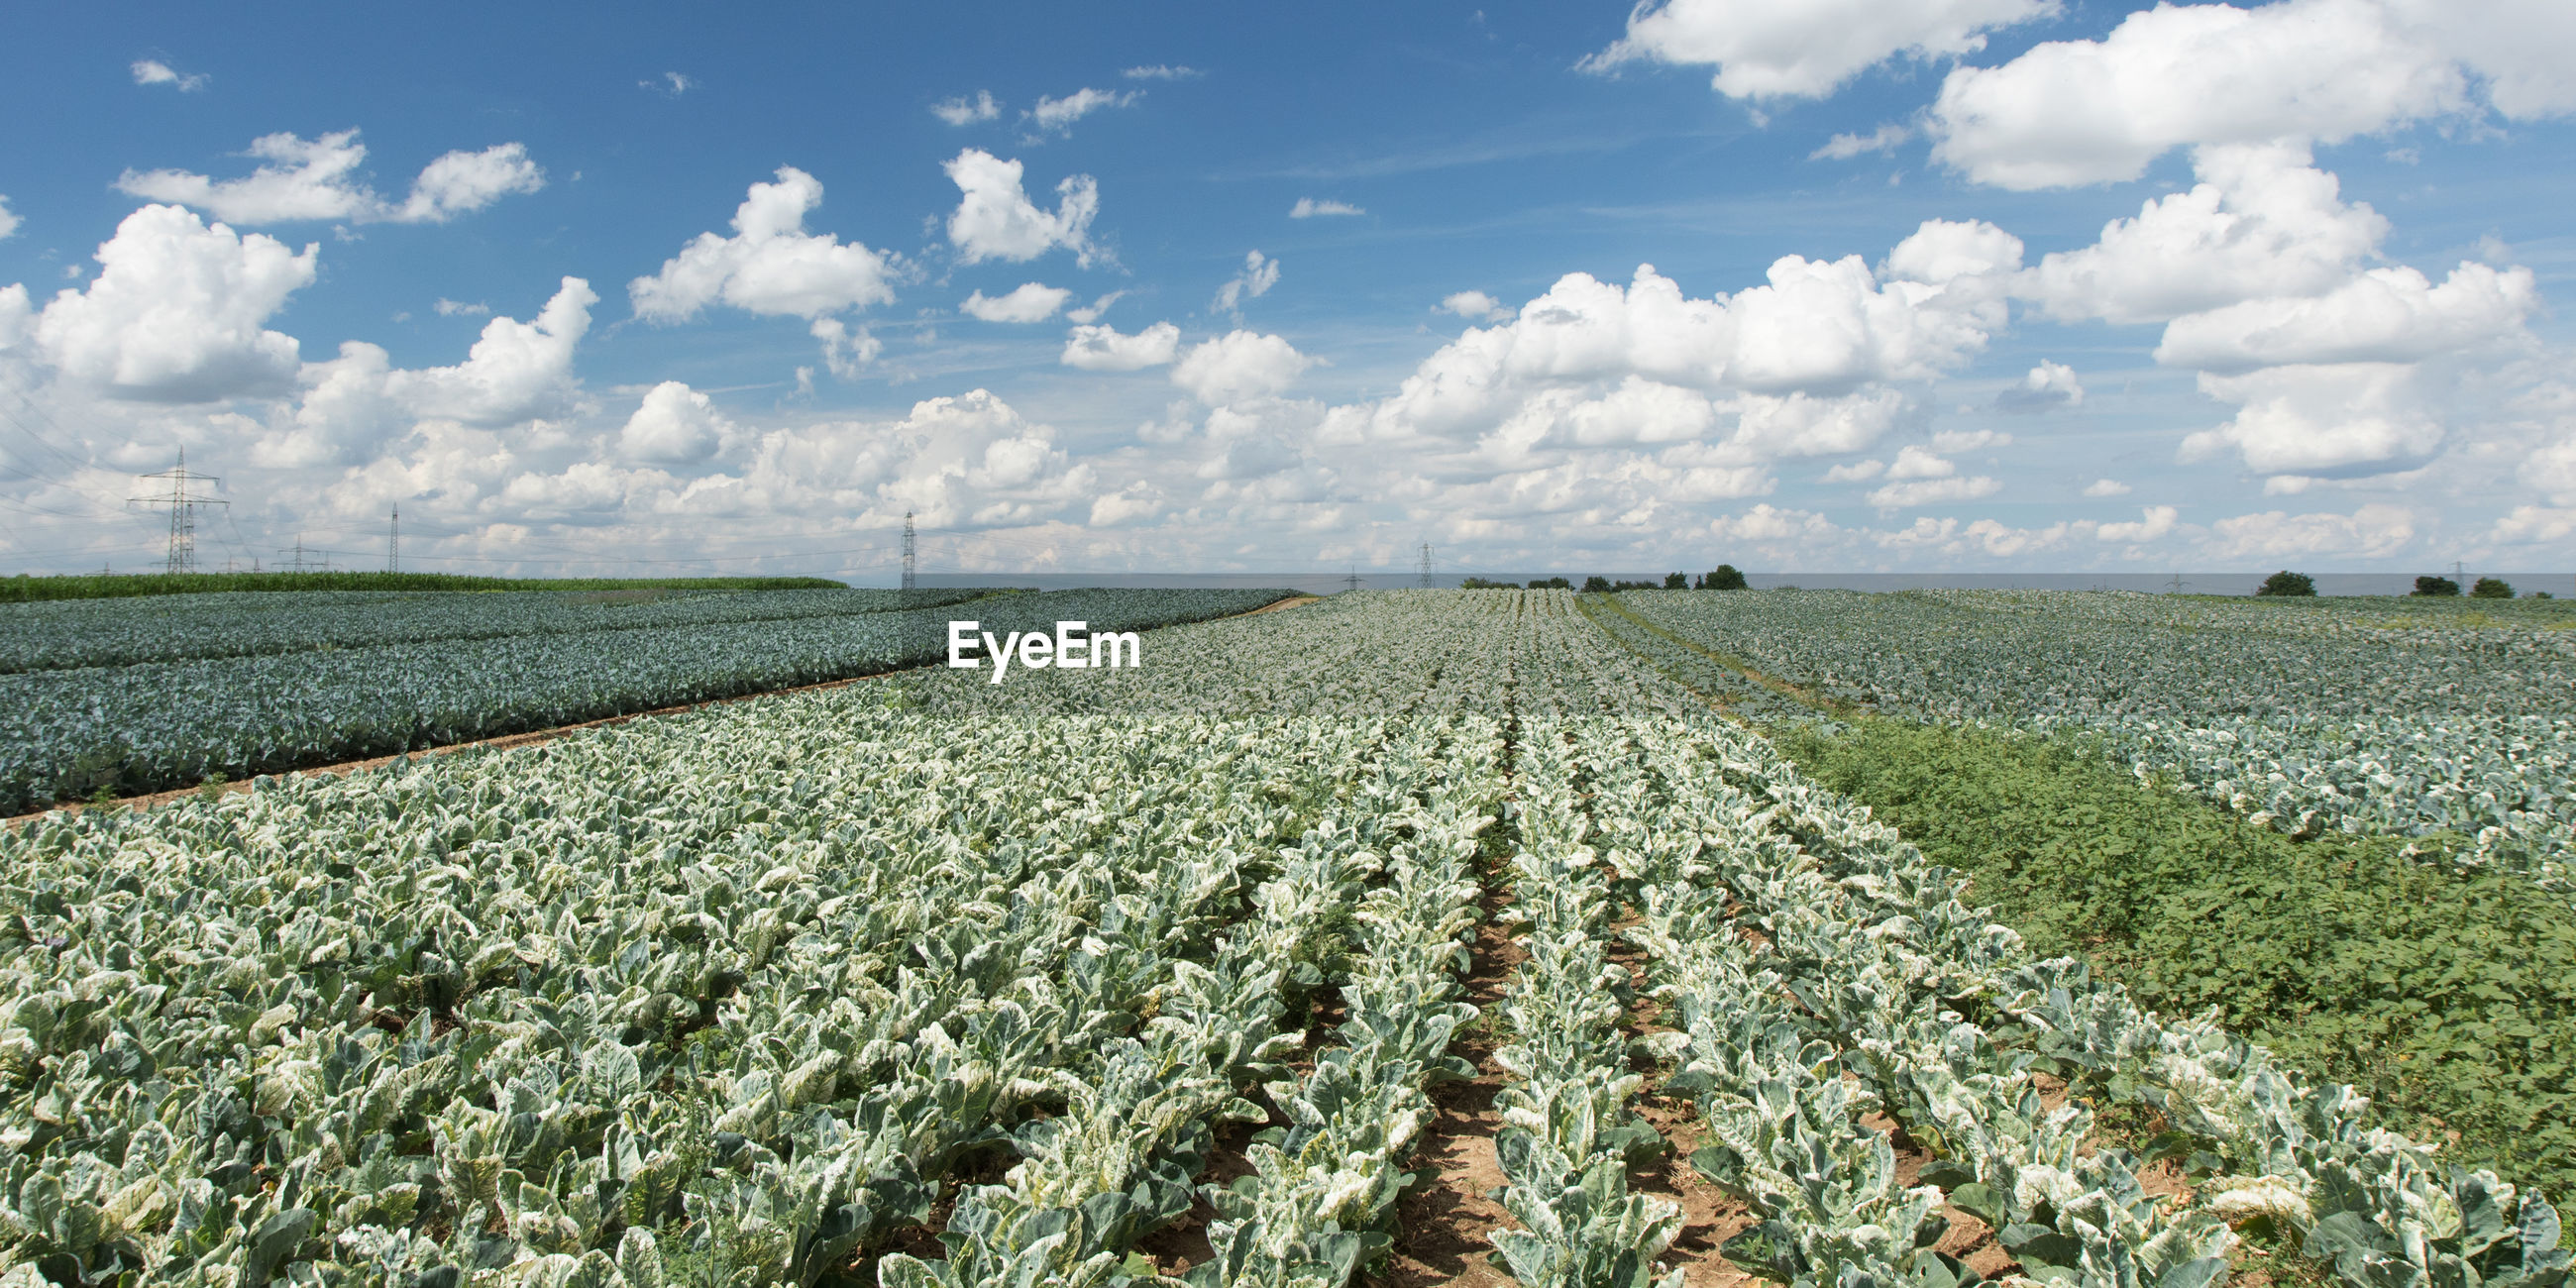 PANORAMIC VIEW OF AGRICULTURAL FIELD AGAINST SKY